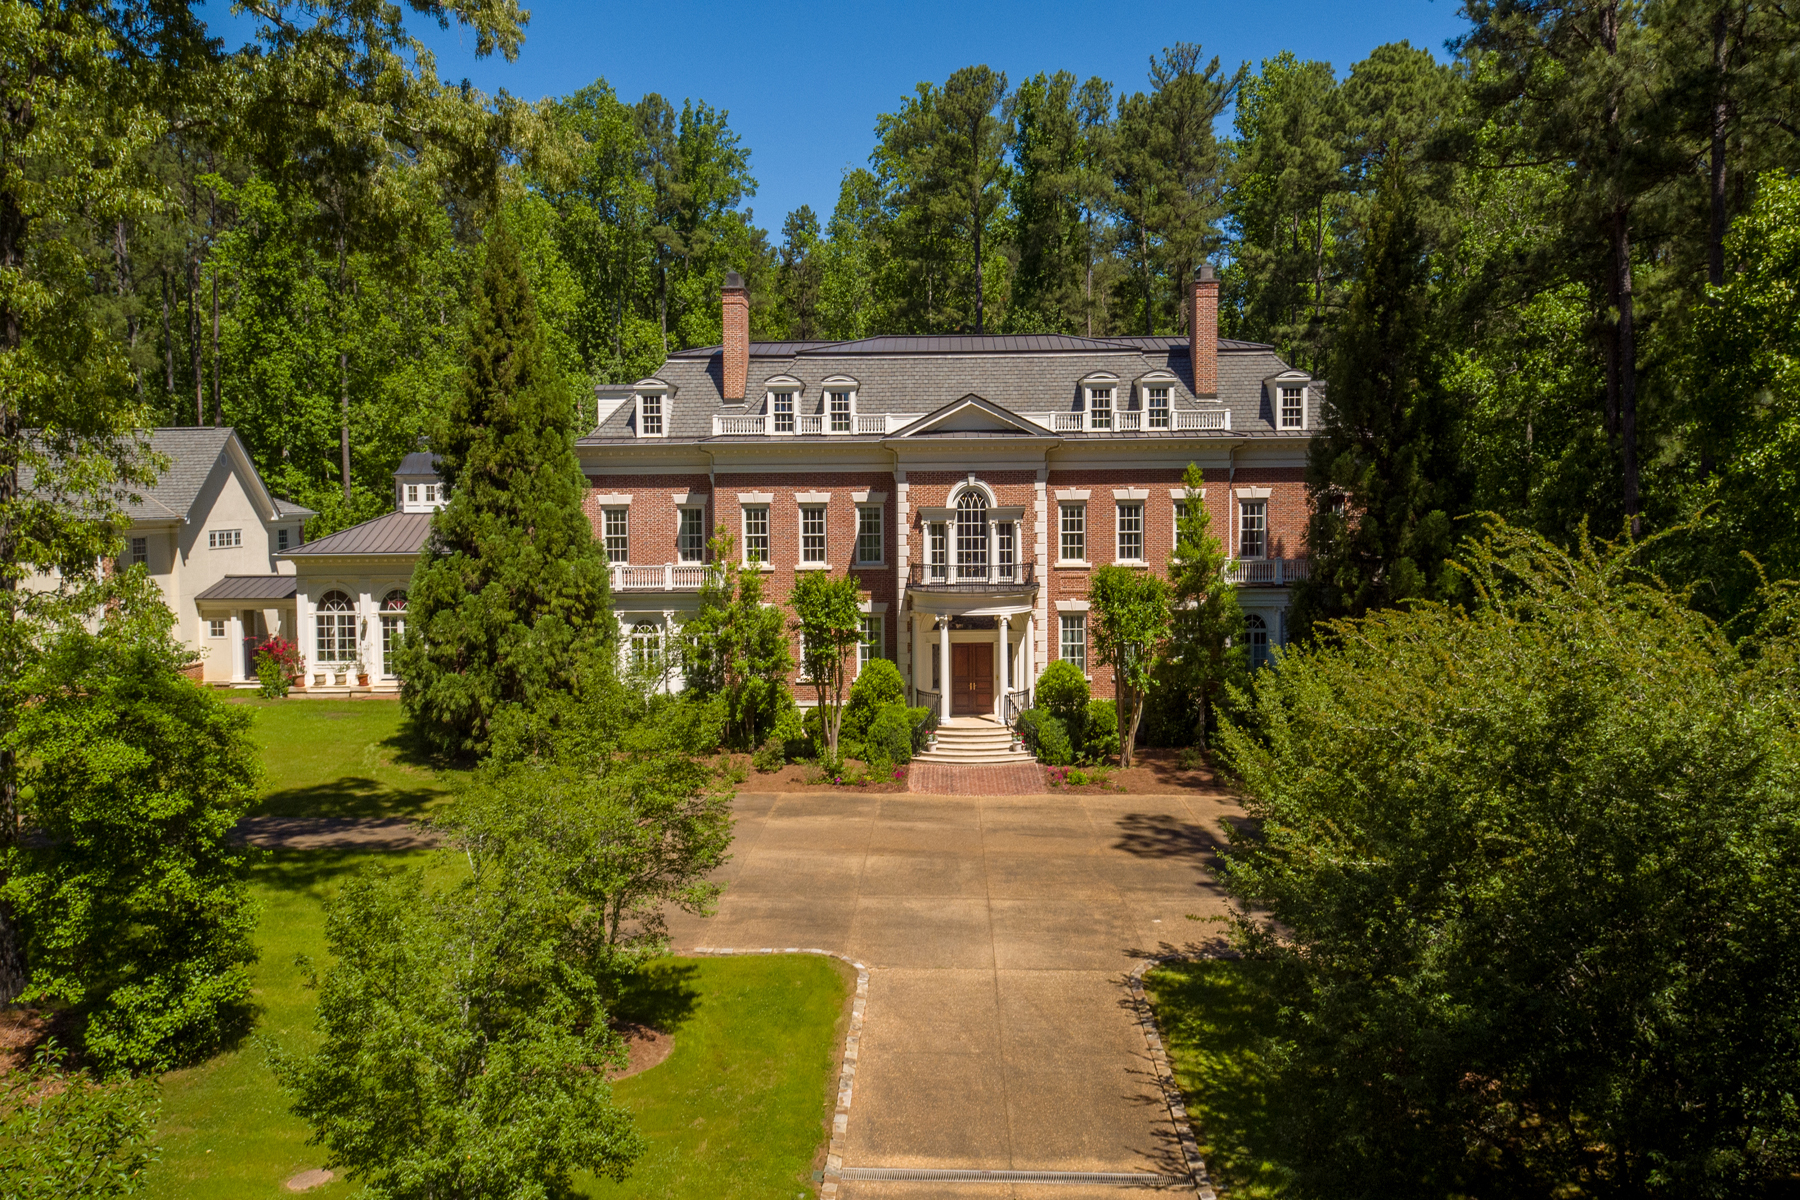 Villa per Vendita alle ore Exquisite Private Estate, Architectural Gem In Peachtree City 321 Loring Lane Peachtree City, Georgia 30269 Stati Uniti